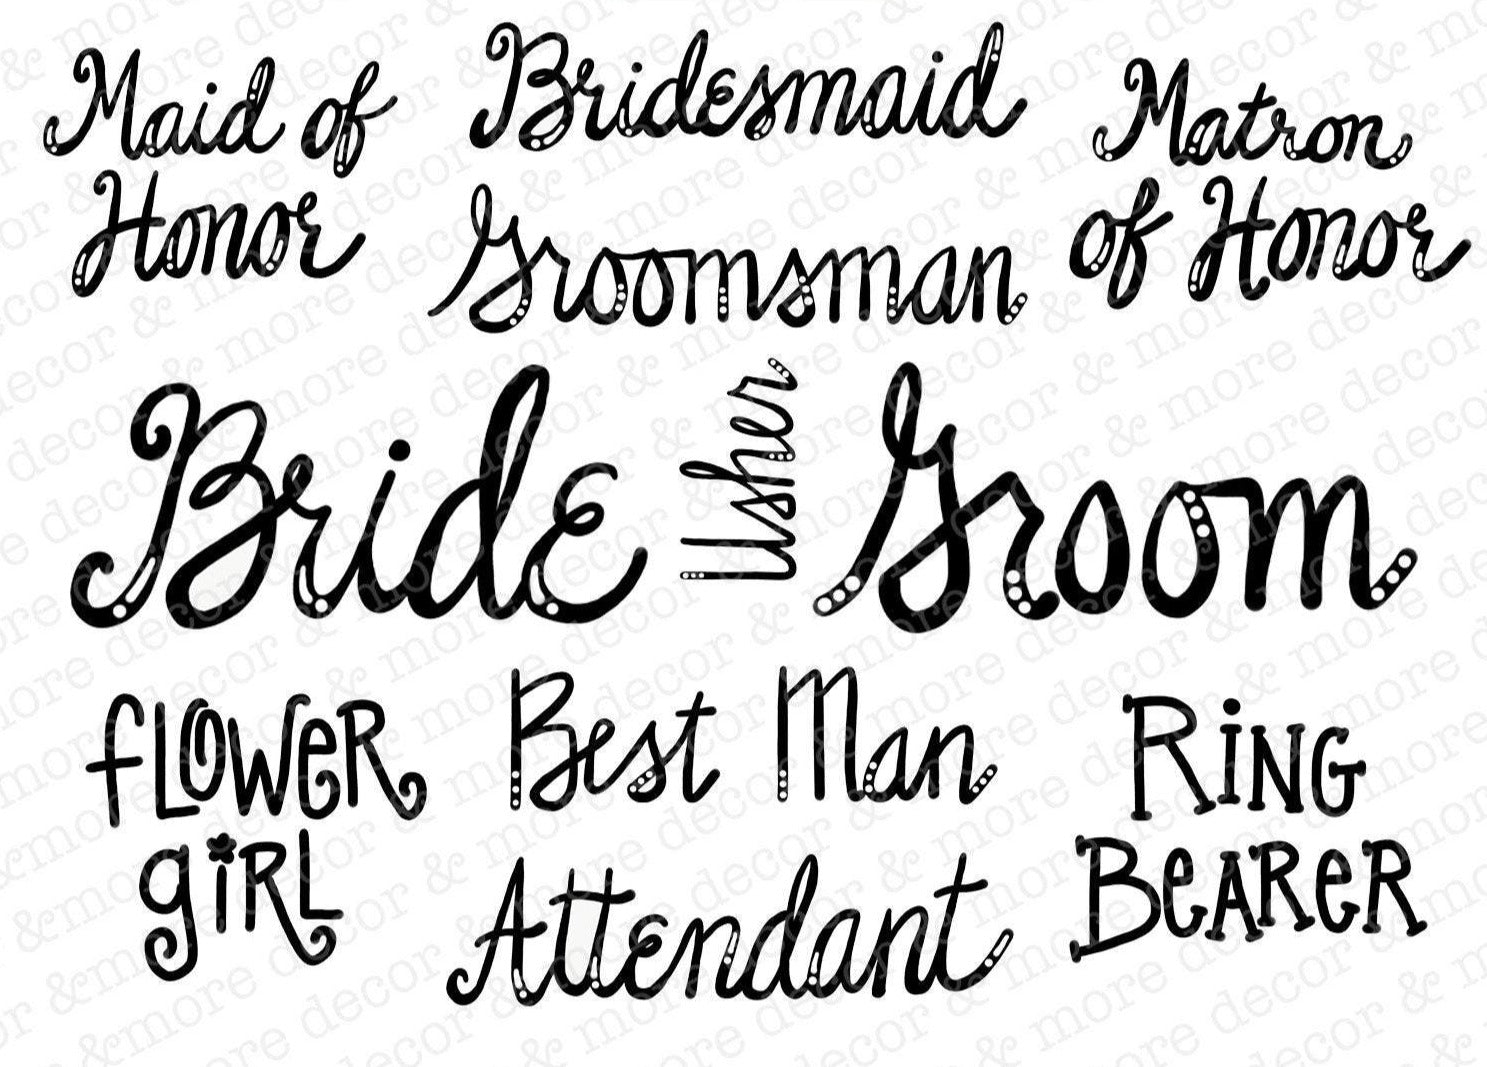 SVG Bundle Wedding Party, Wedding Party SVG Cut Files, DIY Wedding Party Gifts, Bridal Party Svg Bundle, Bridesmaid Gift, Groomsman Gift